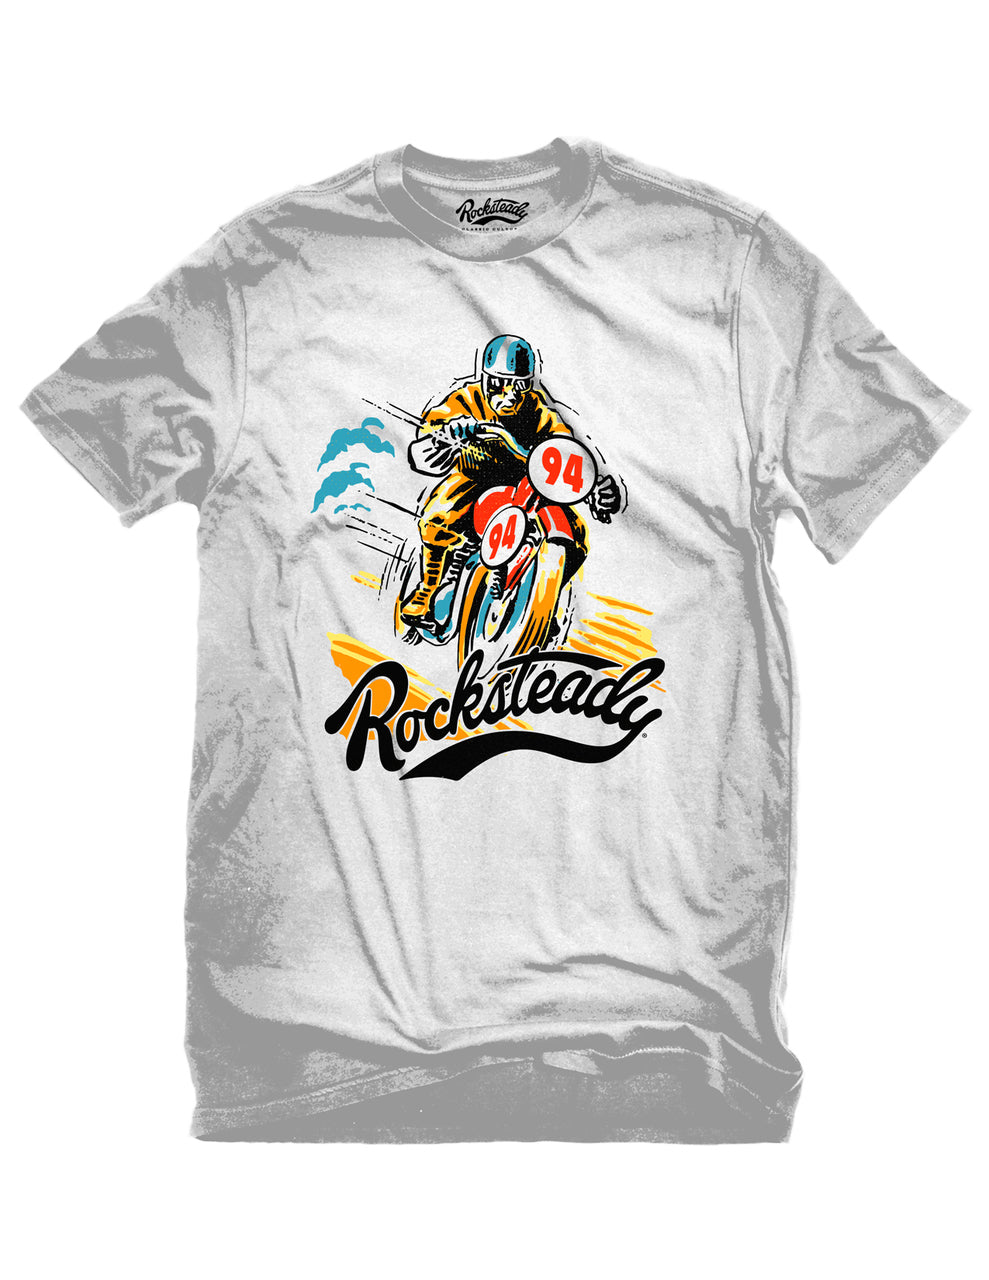 Steady Solo Racer White T-Shirt